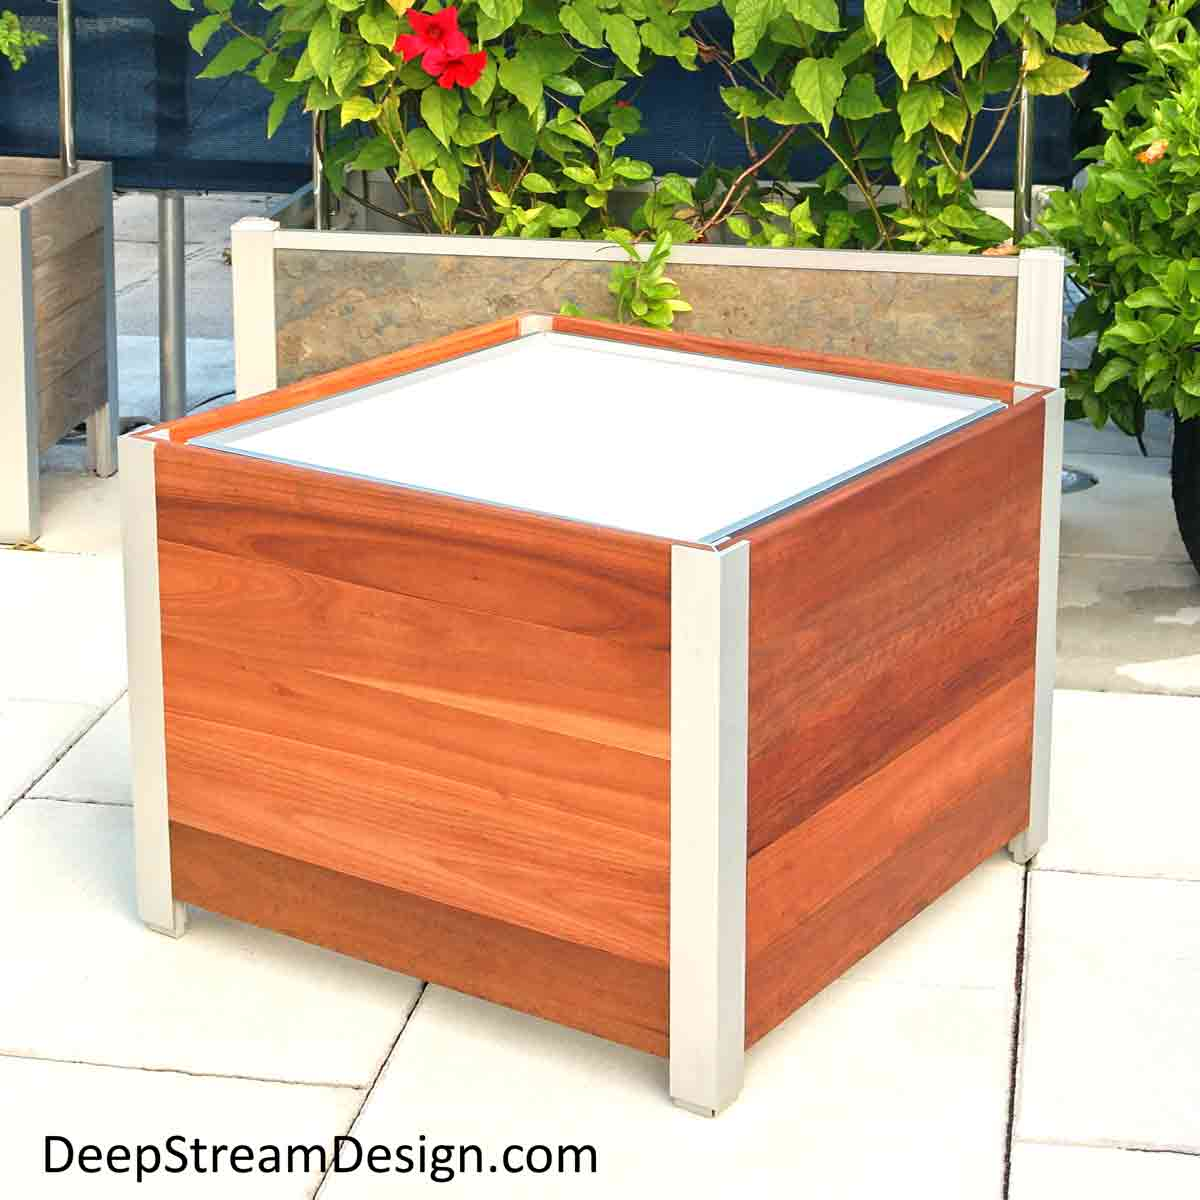 A Modern Planter handmade from Cumaru wood to custom specifications by American craftsmen, shown unplanted with a waterproof planter liner inside that is supported by a hidden structural aluminum frame. Behind the Modern  Wood Planter is a larger Modern Planter handcrafted from natural slate with a trellis frame covered in a green vine with bright red flowers that acts as a privacy screen blocking the view of air conditioning equipment behind it on a tropical roof deck.